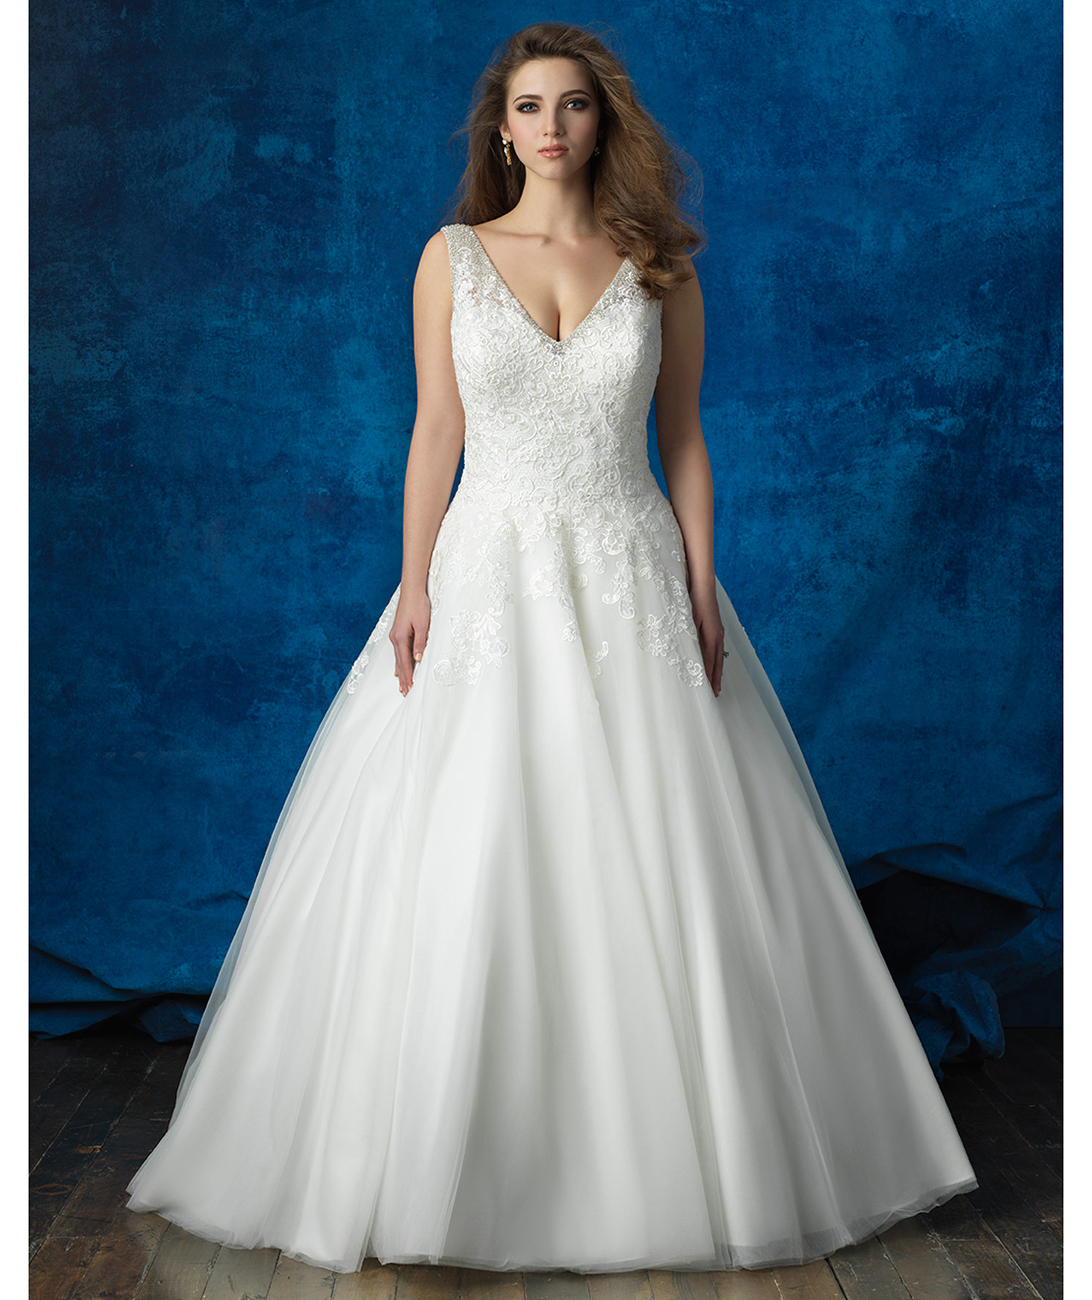 Real Brides Size 12: Wedding Dresses If You're Plus-Size